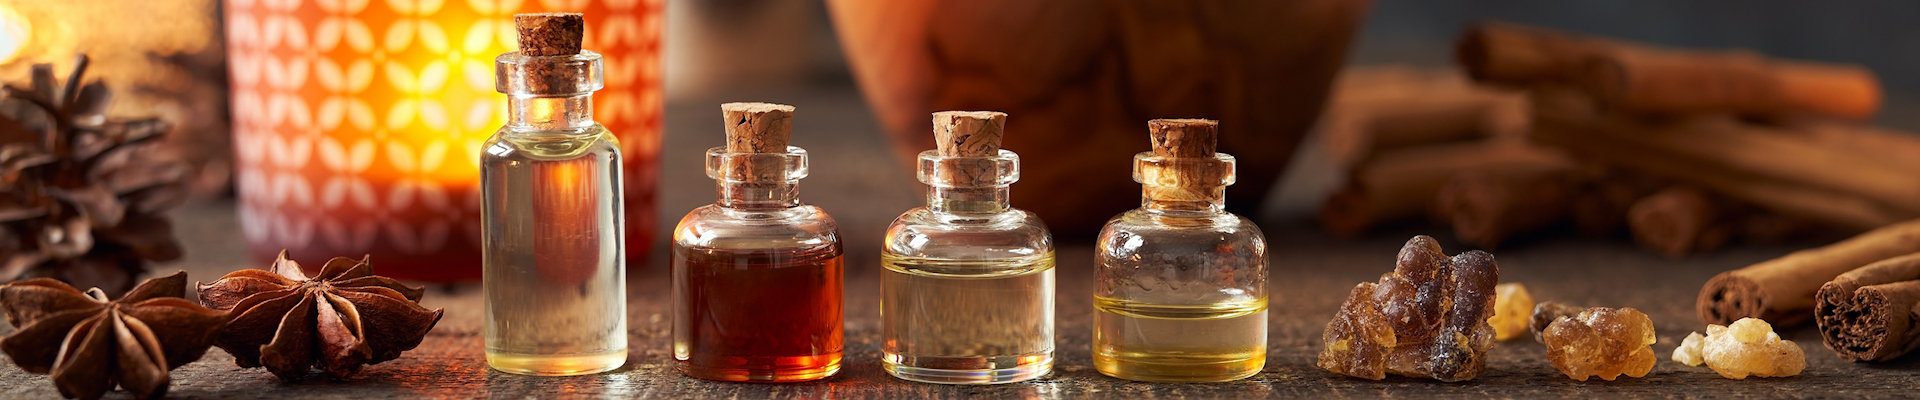 french soaps ingredients banner.jpg